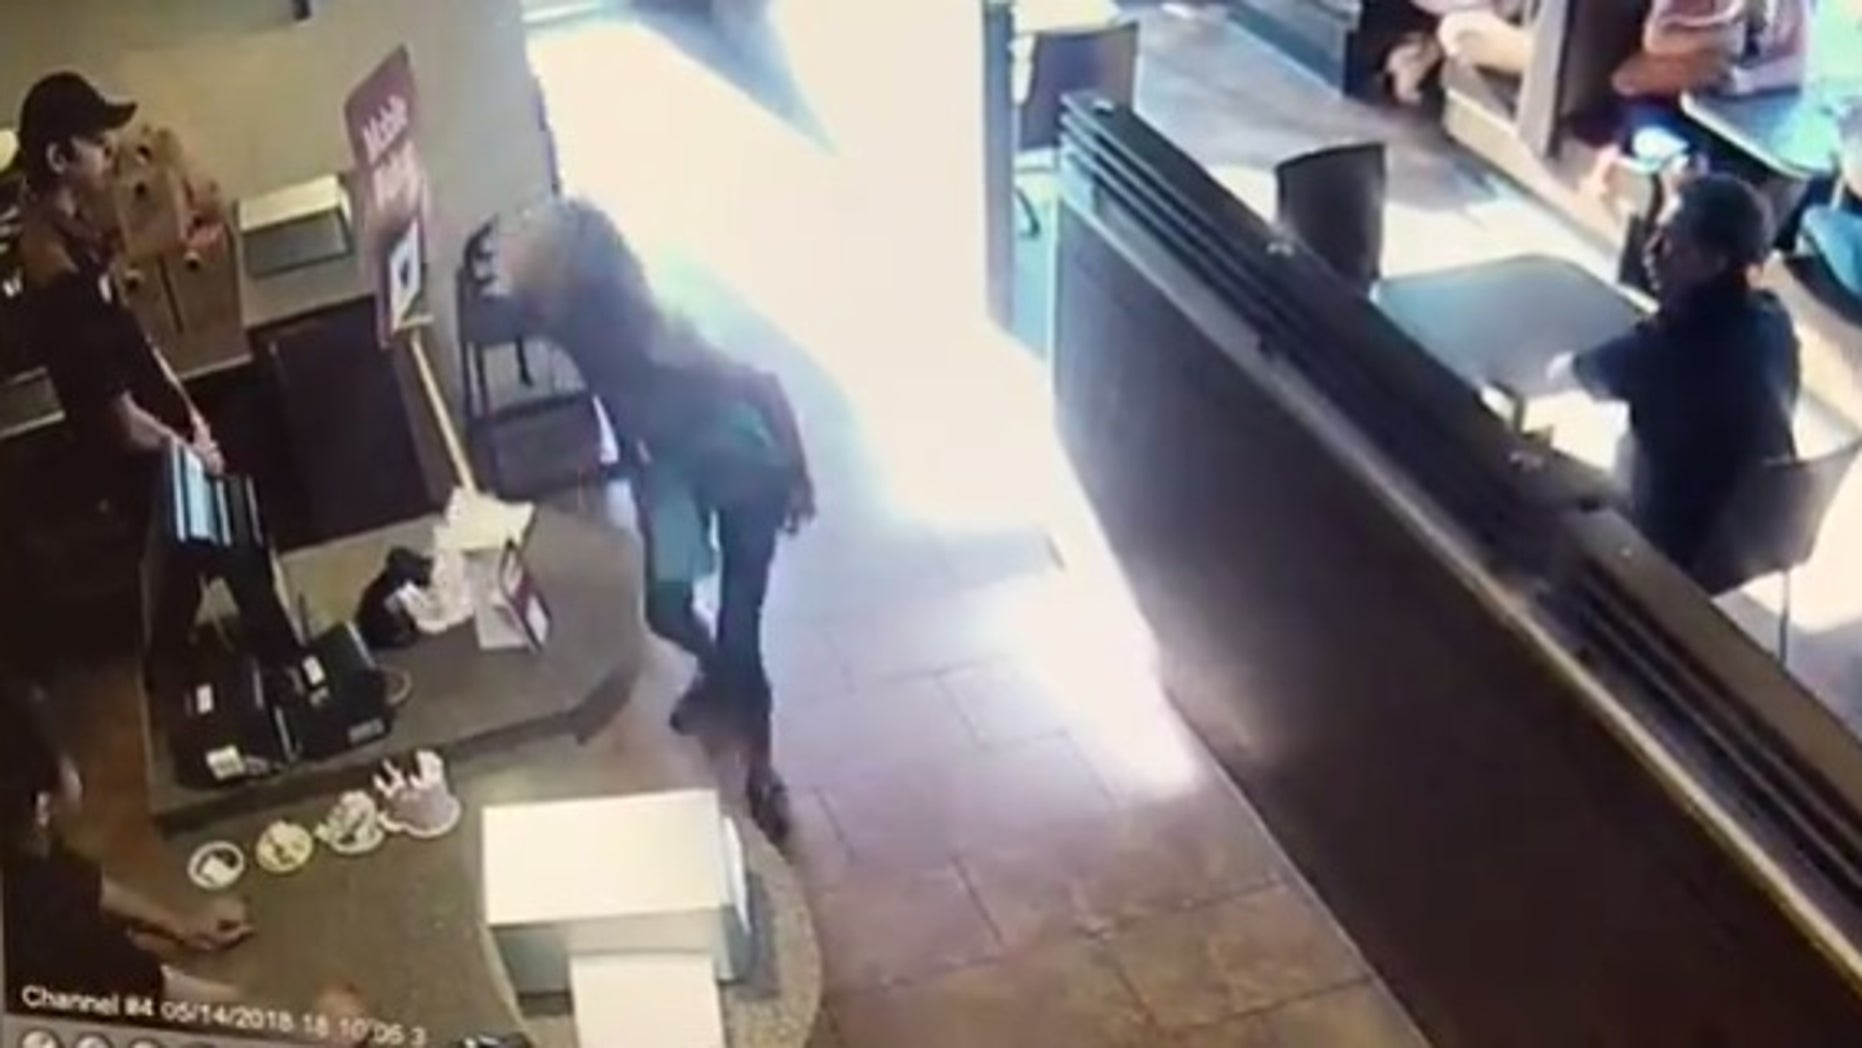 A woman apparently defecated on the floor of a Tim Hortons and threw the byproduct at a staffer on Monday.